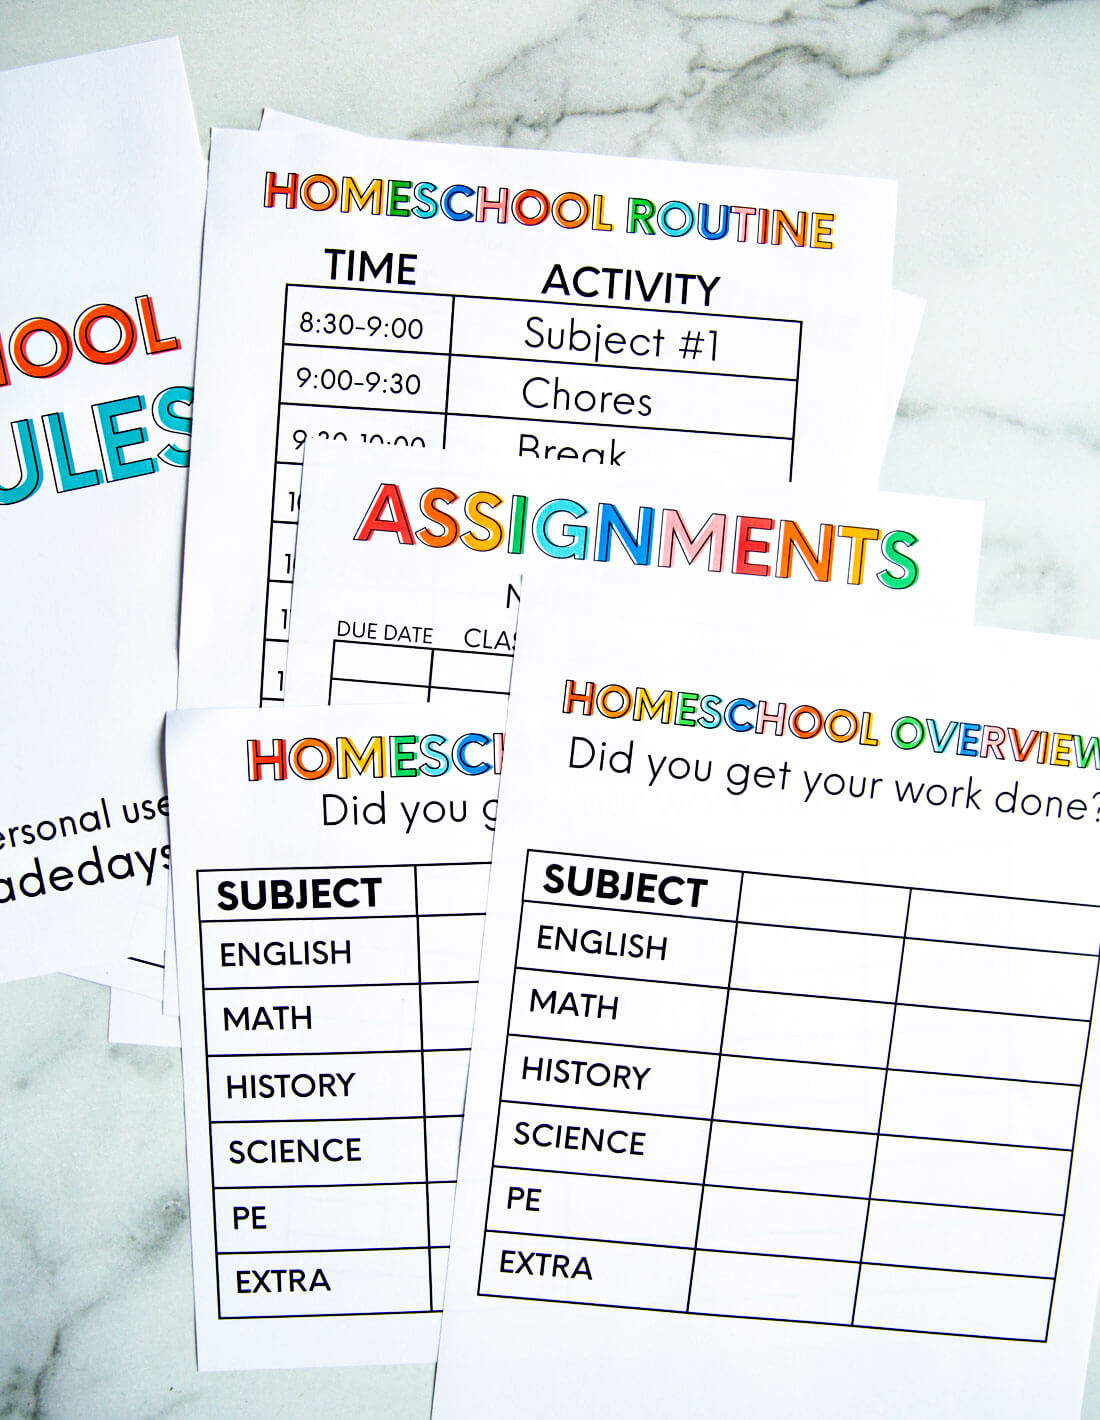 Printable Homeschool Schedule From Thirty Handmade Days